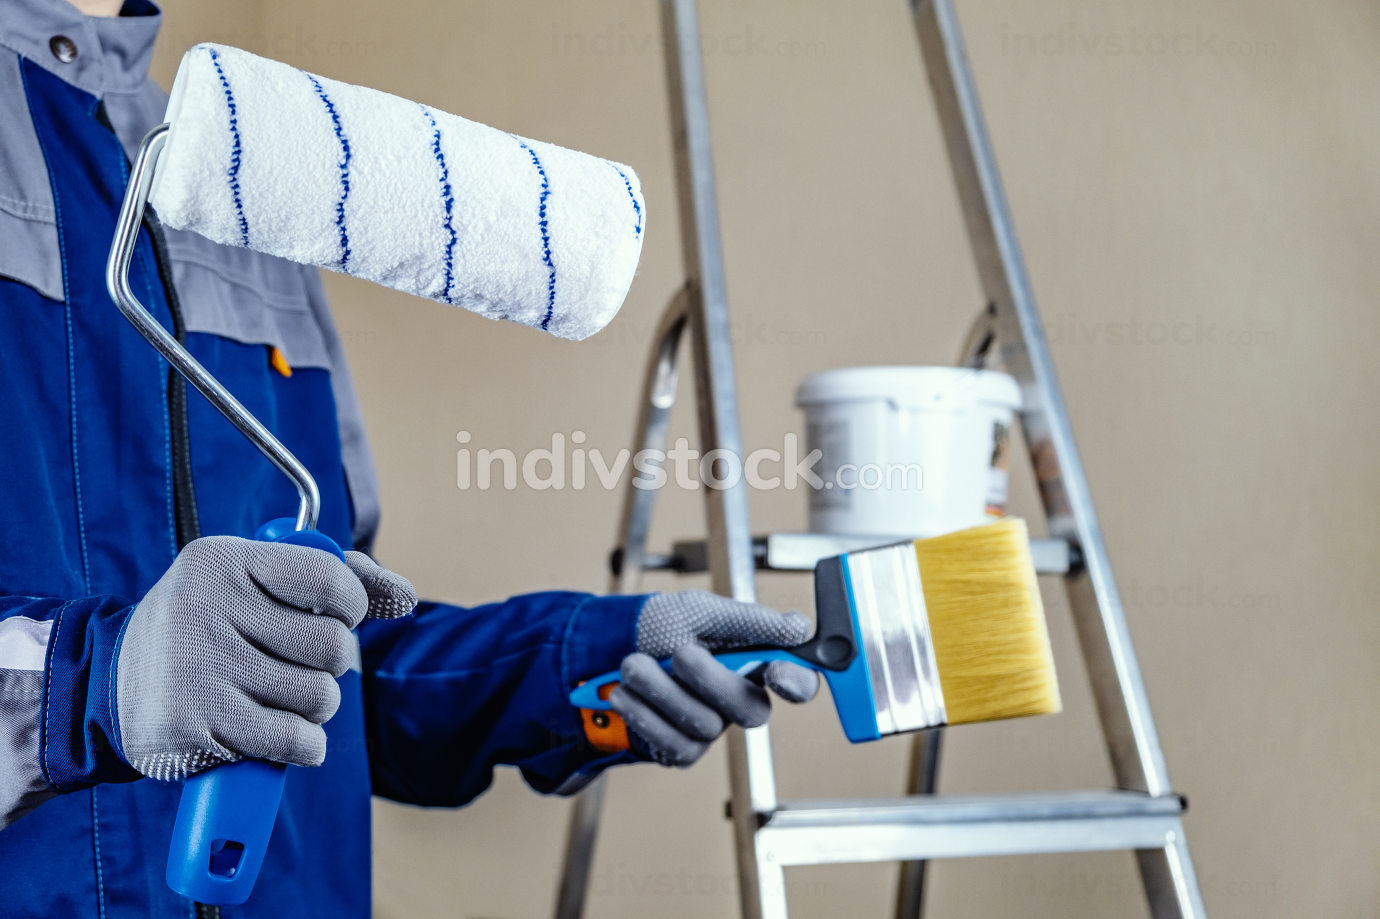 The plaster painter is ready to paint the wall. In the hands of a roller and brush. A stepladder and a bucket of paint in the background